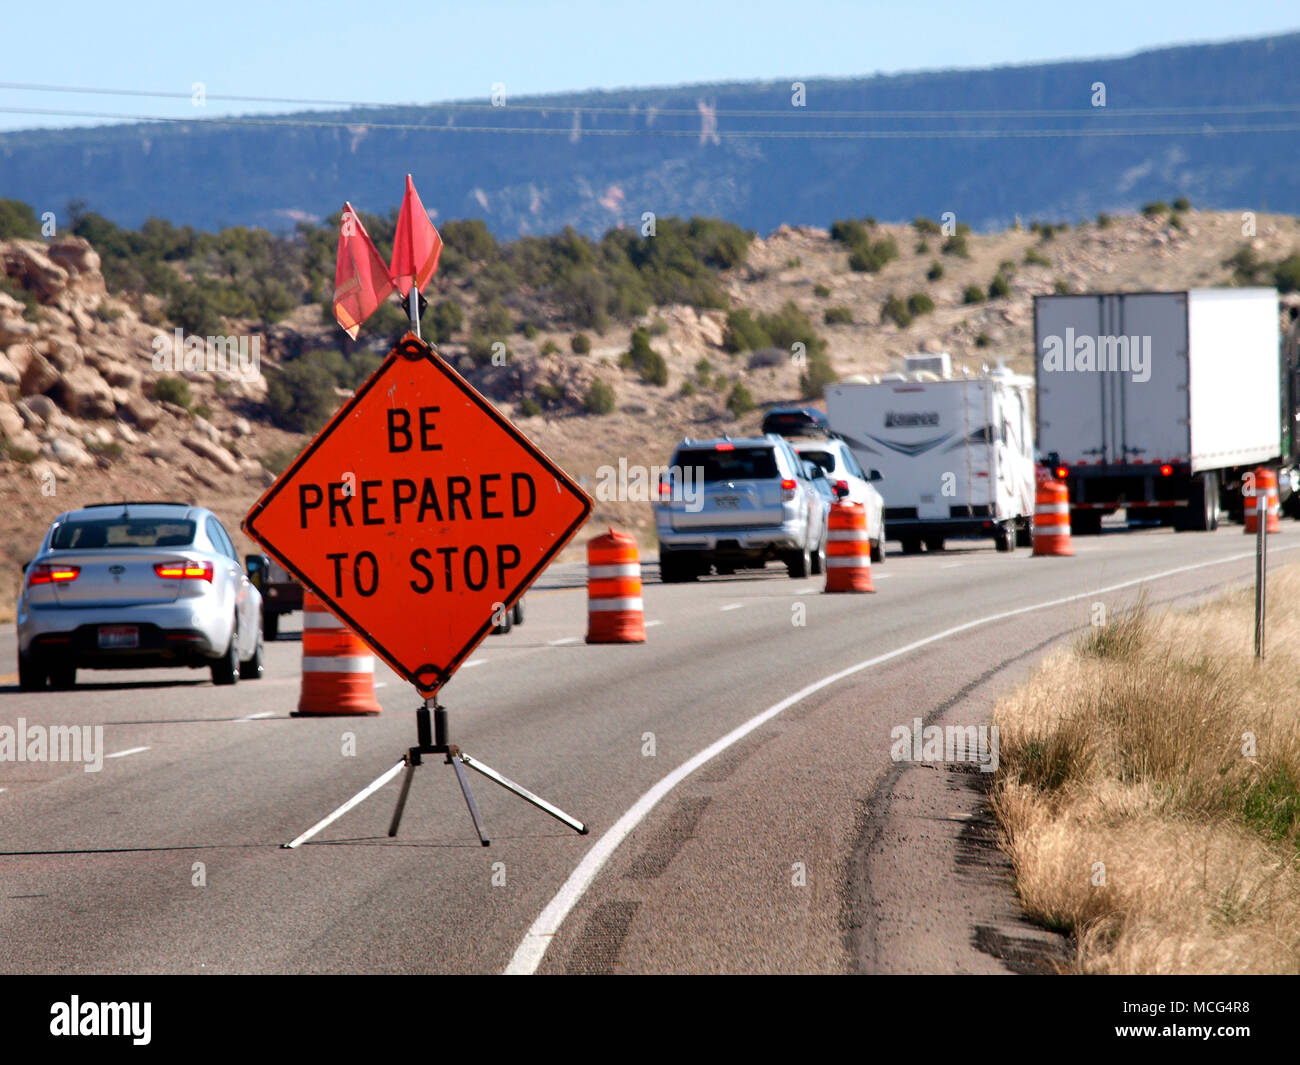 Going West, tourists fill up the roads and highways need to be widened. As they work to add an extra lane on US highway 191 between the Arches National Park and Canyonlands National Park. - Stock Image